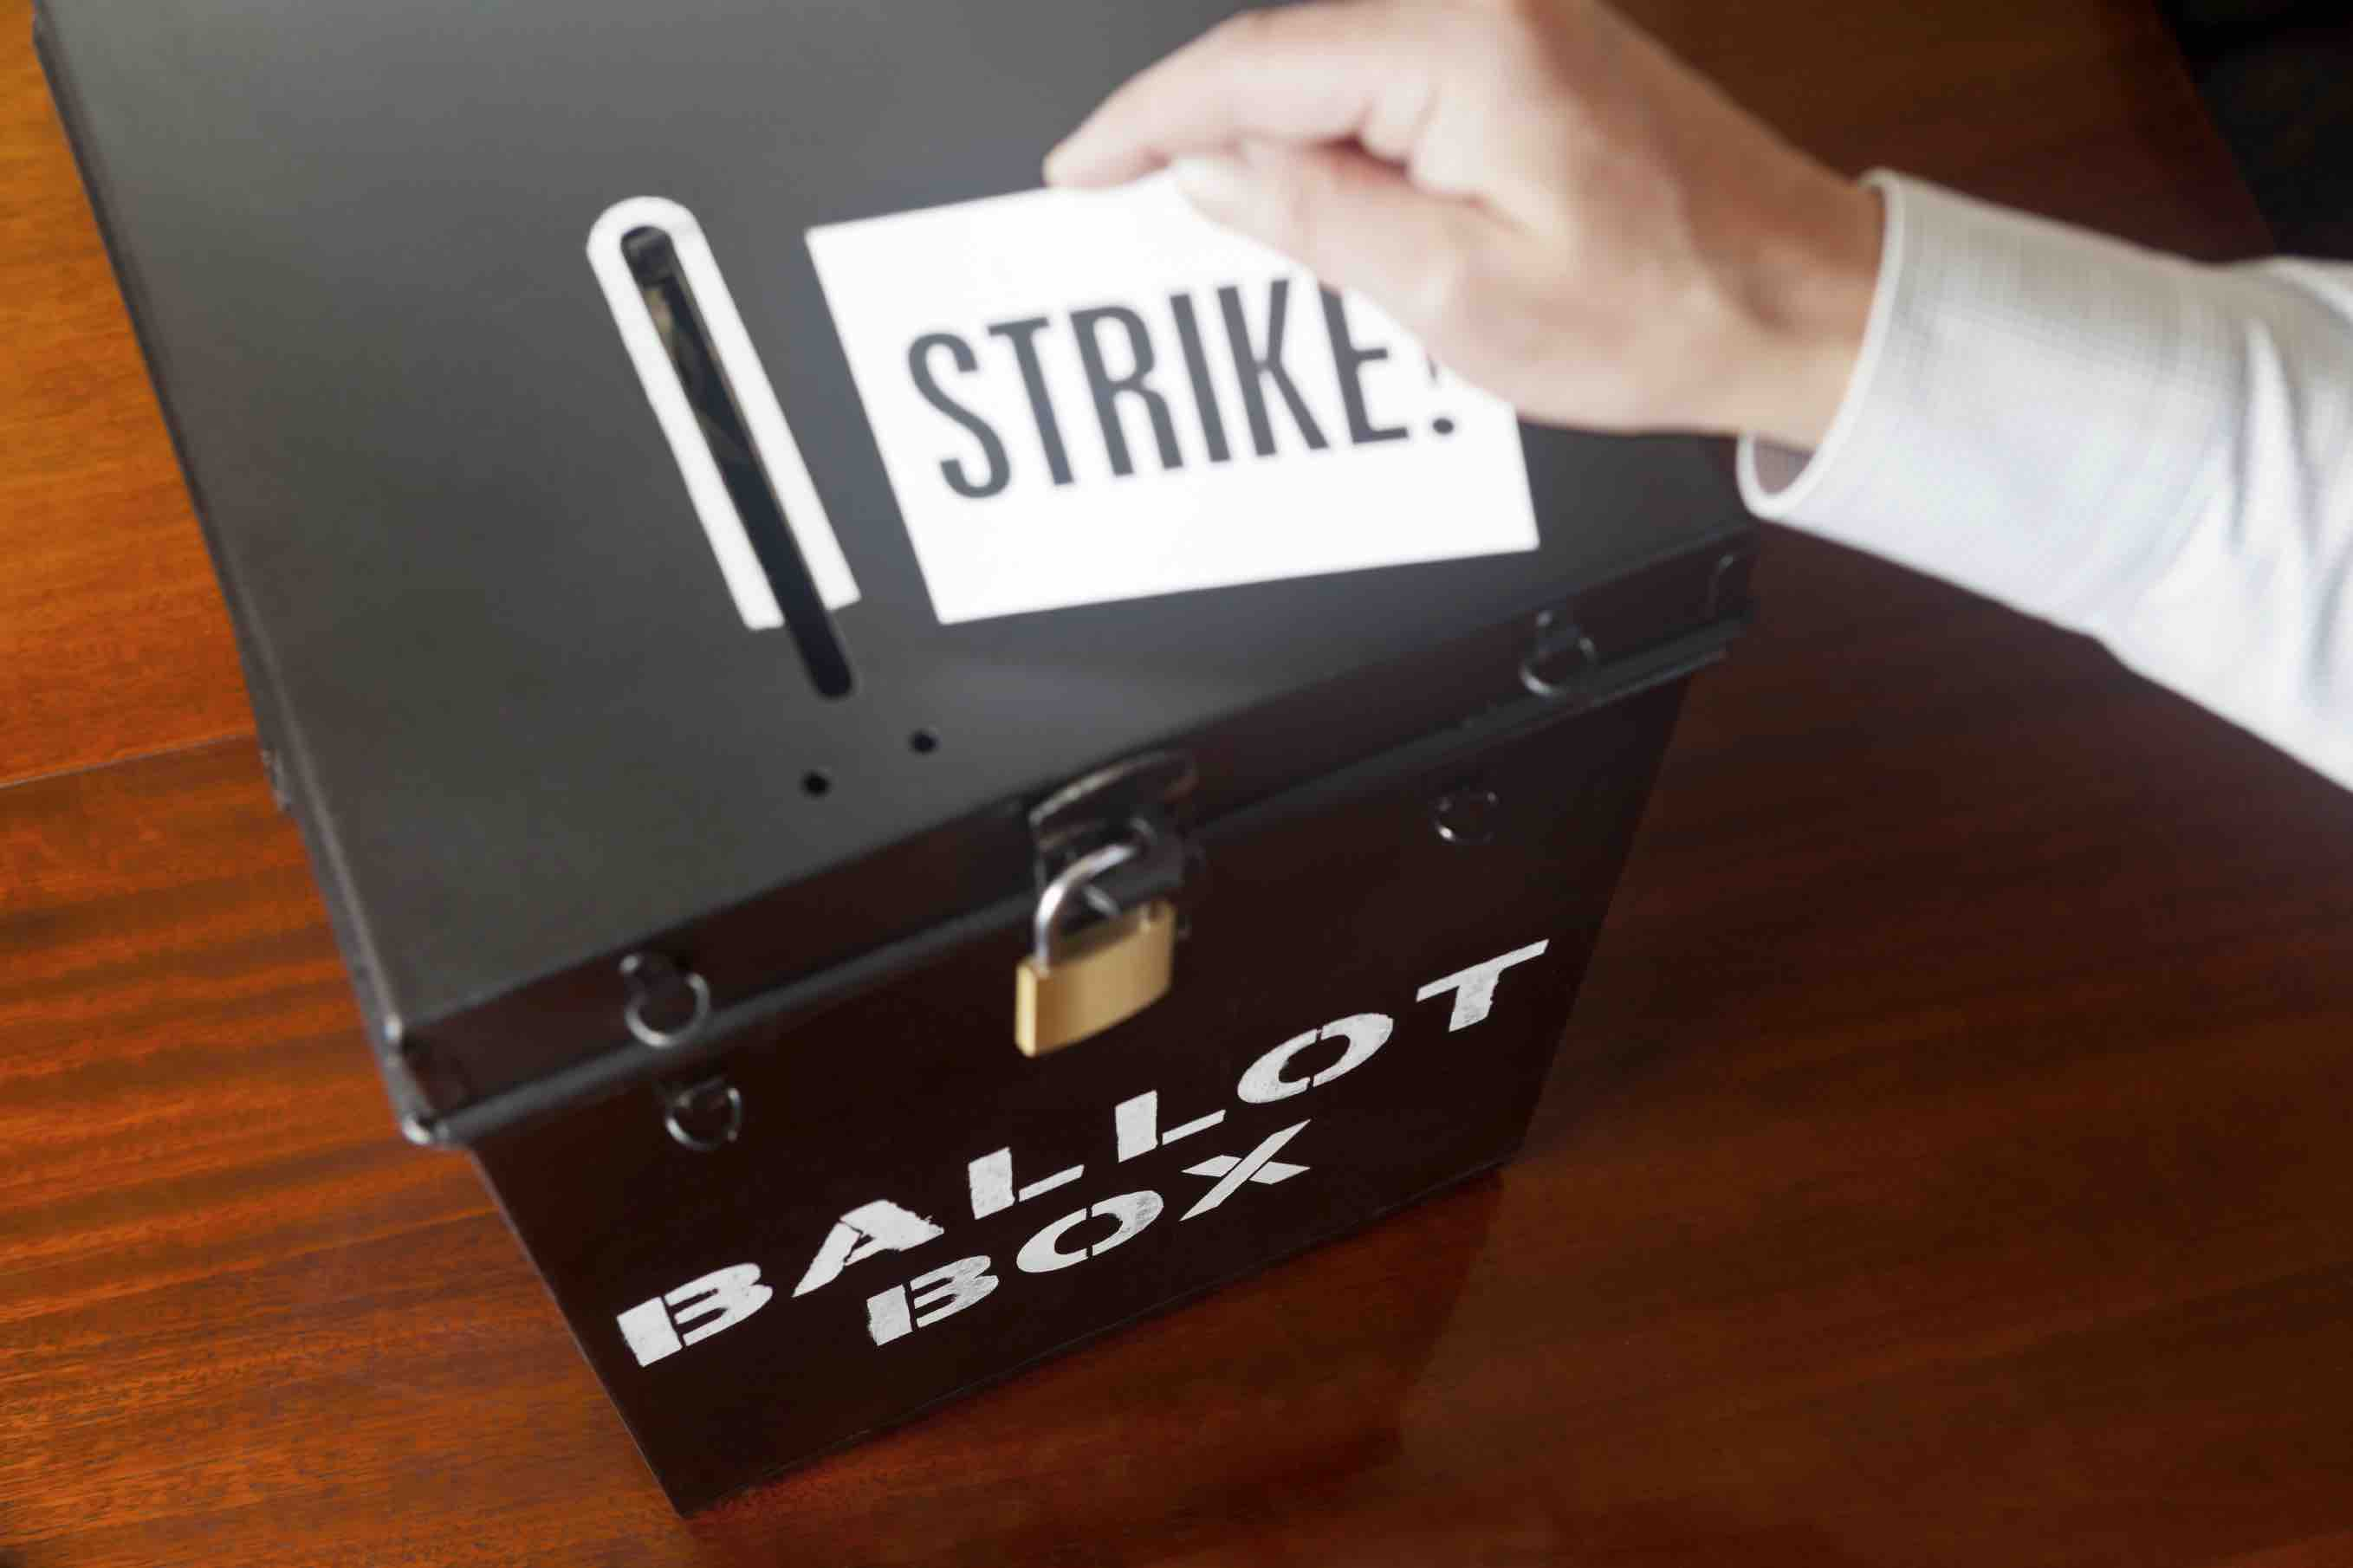 Voting to Strike